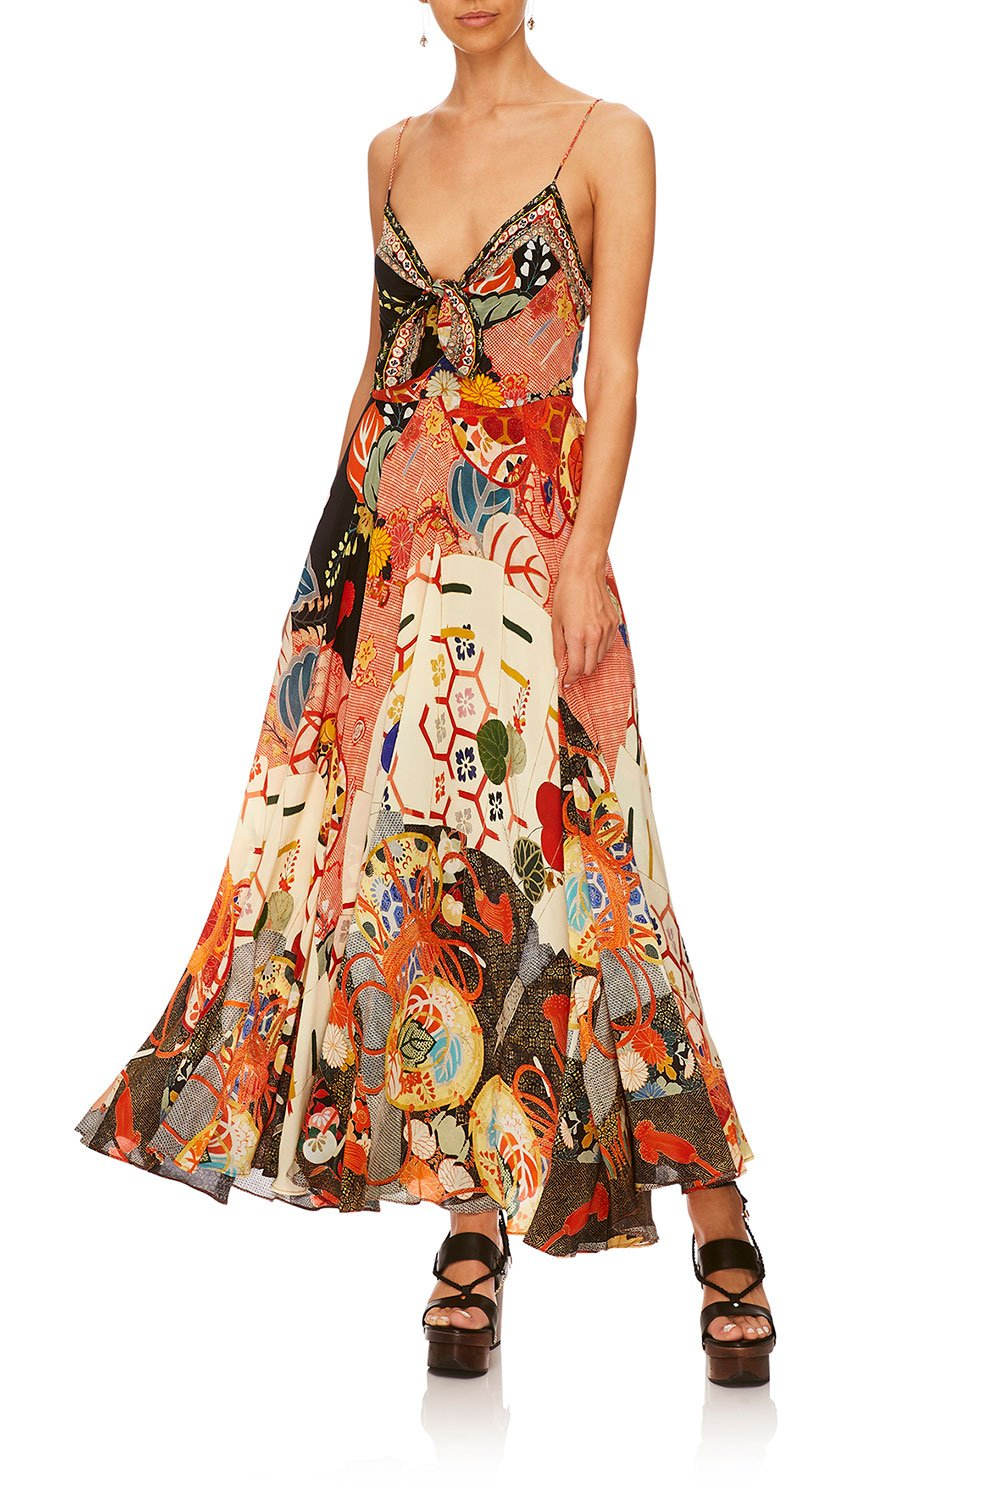 KISSING THE SUN LONG DRESS W TIE FRONT